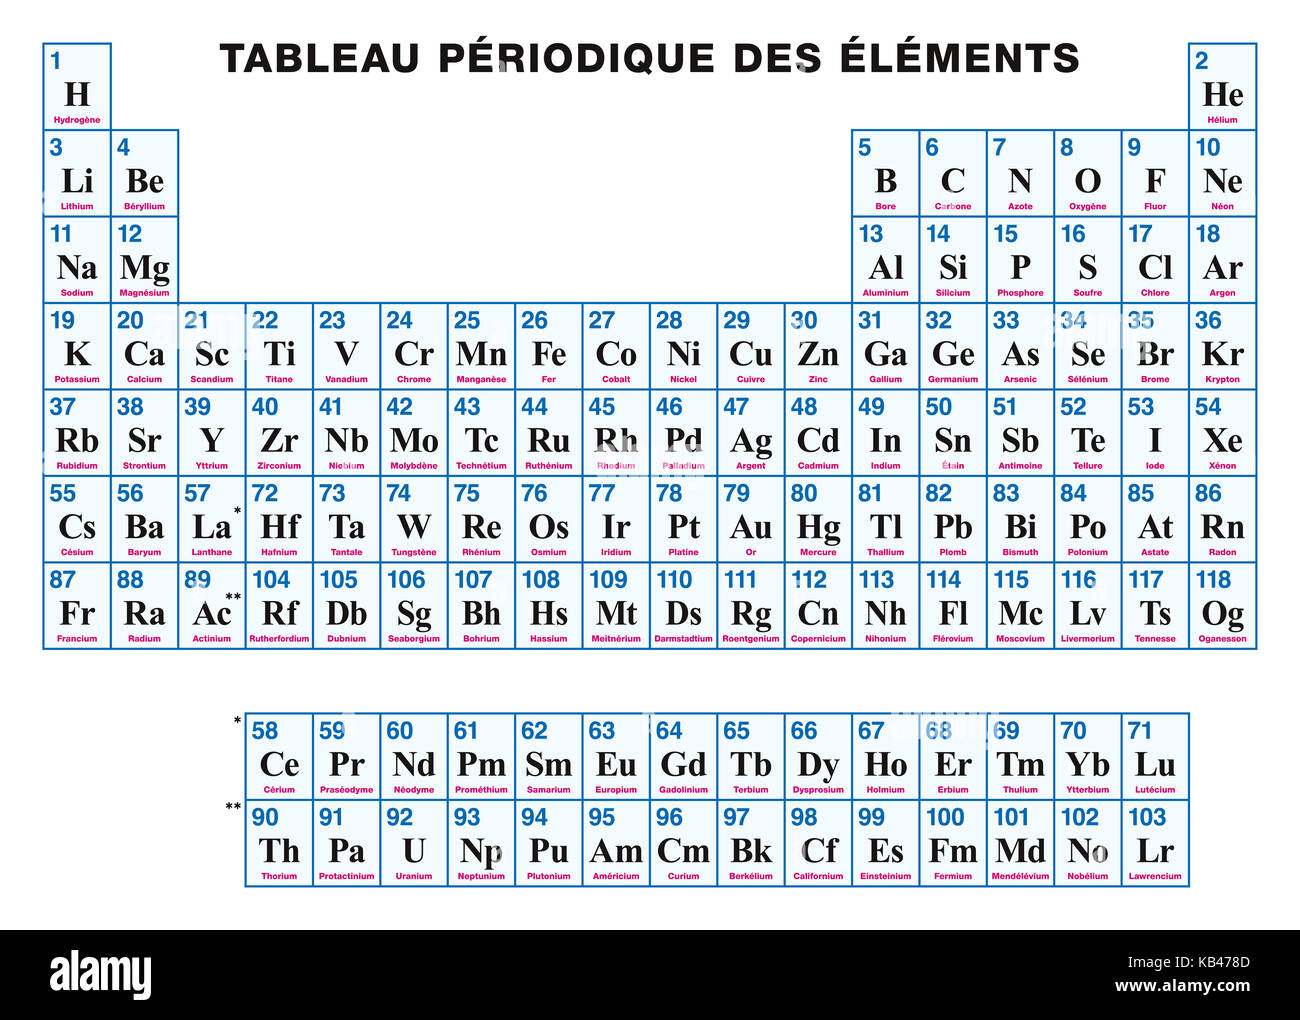 Periodic table of the elements french tabular arrangement of periodic table of the elements french tabular arrangement of chemical elements with their atomic gamestrikefo Images